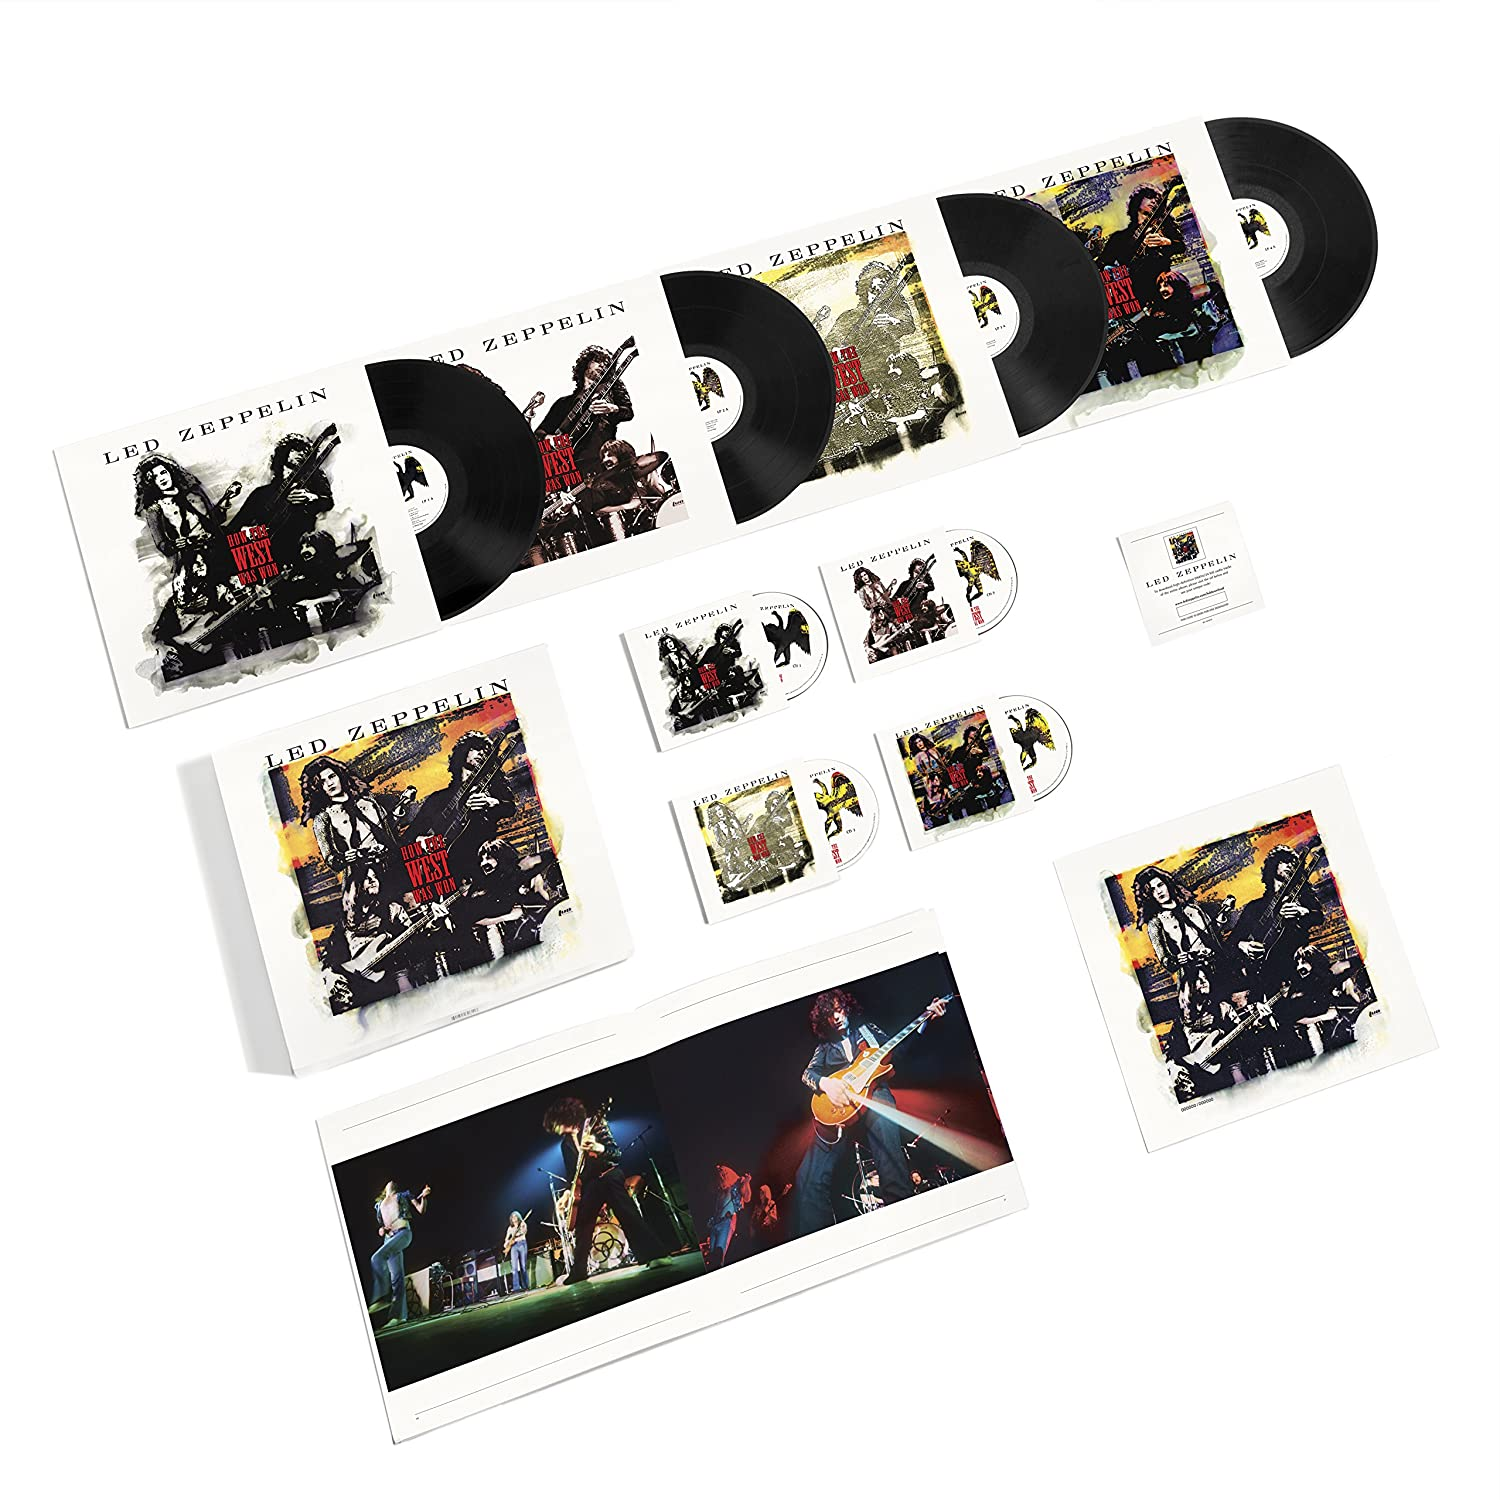 led zeppelin how the west was won 3cd4lp1dvd amazoncom music - Led Zeppelin Christmas